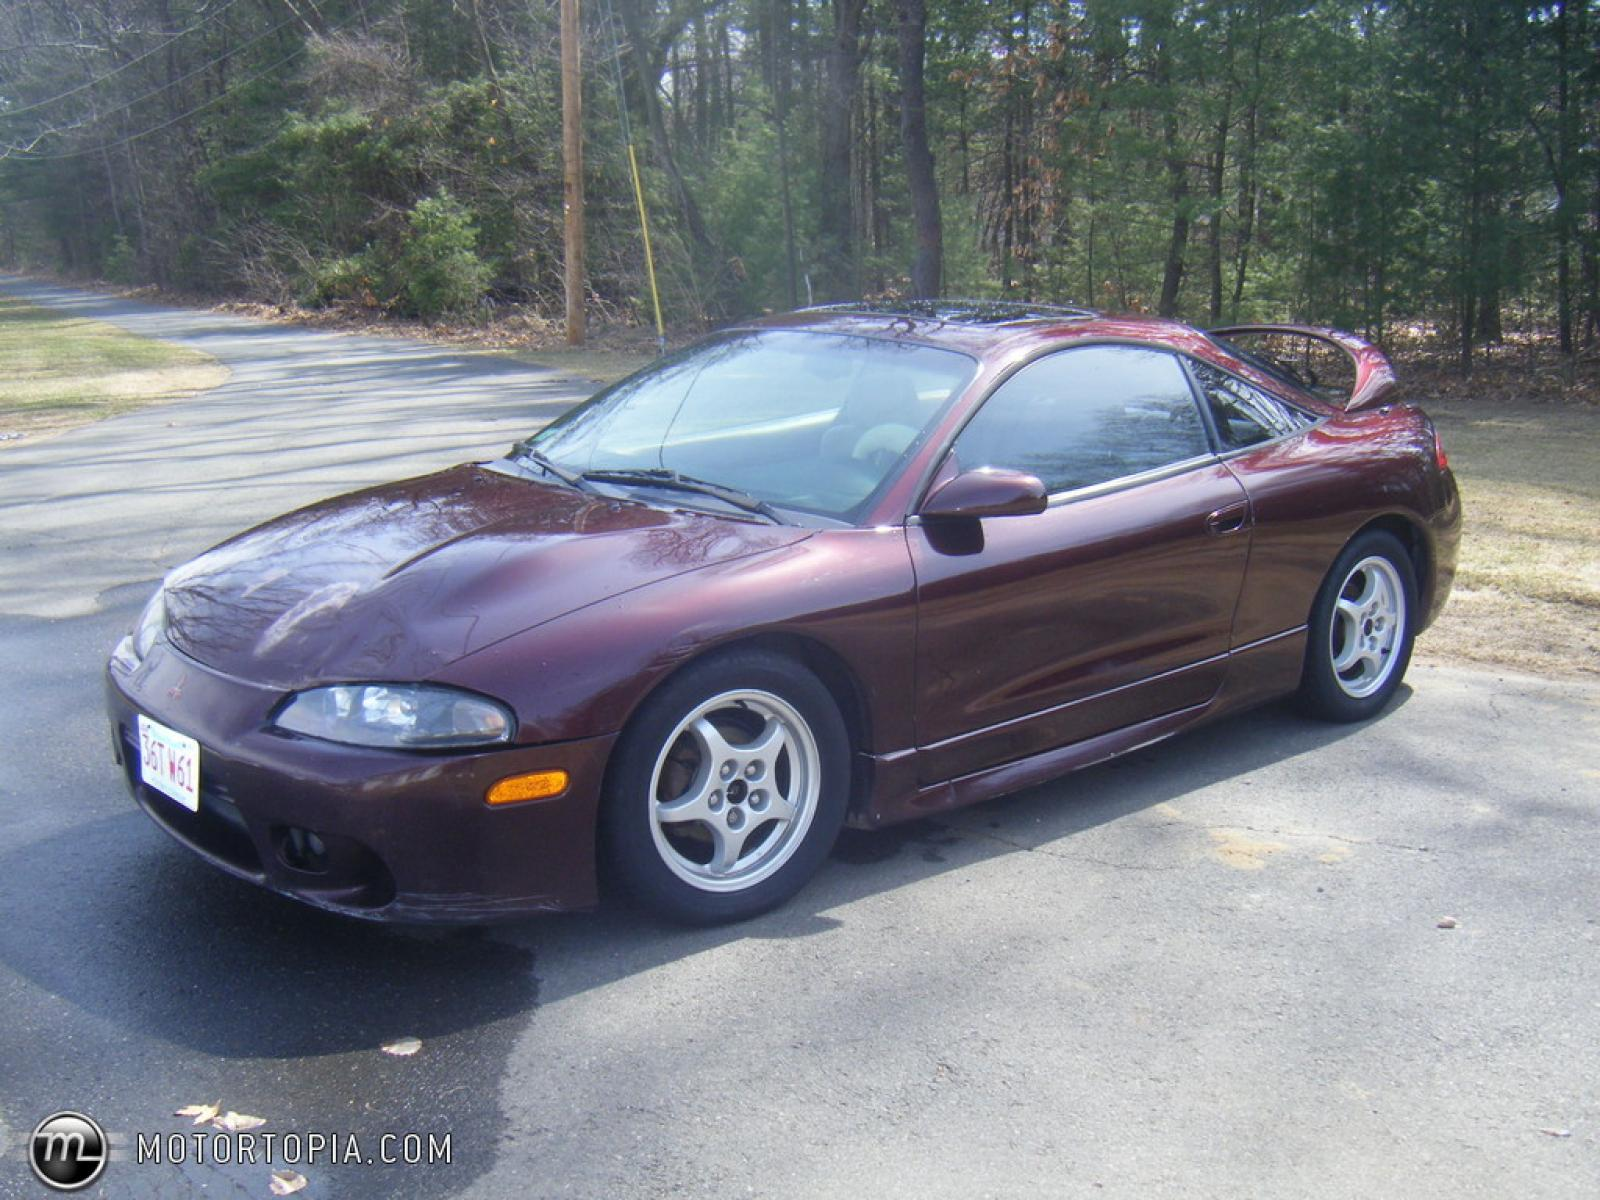 1997 Mitsubishi Eclipse - Information and photos - Zomb Drive